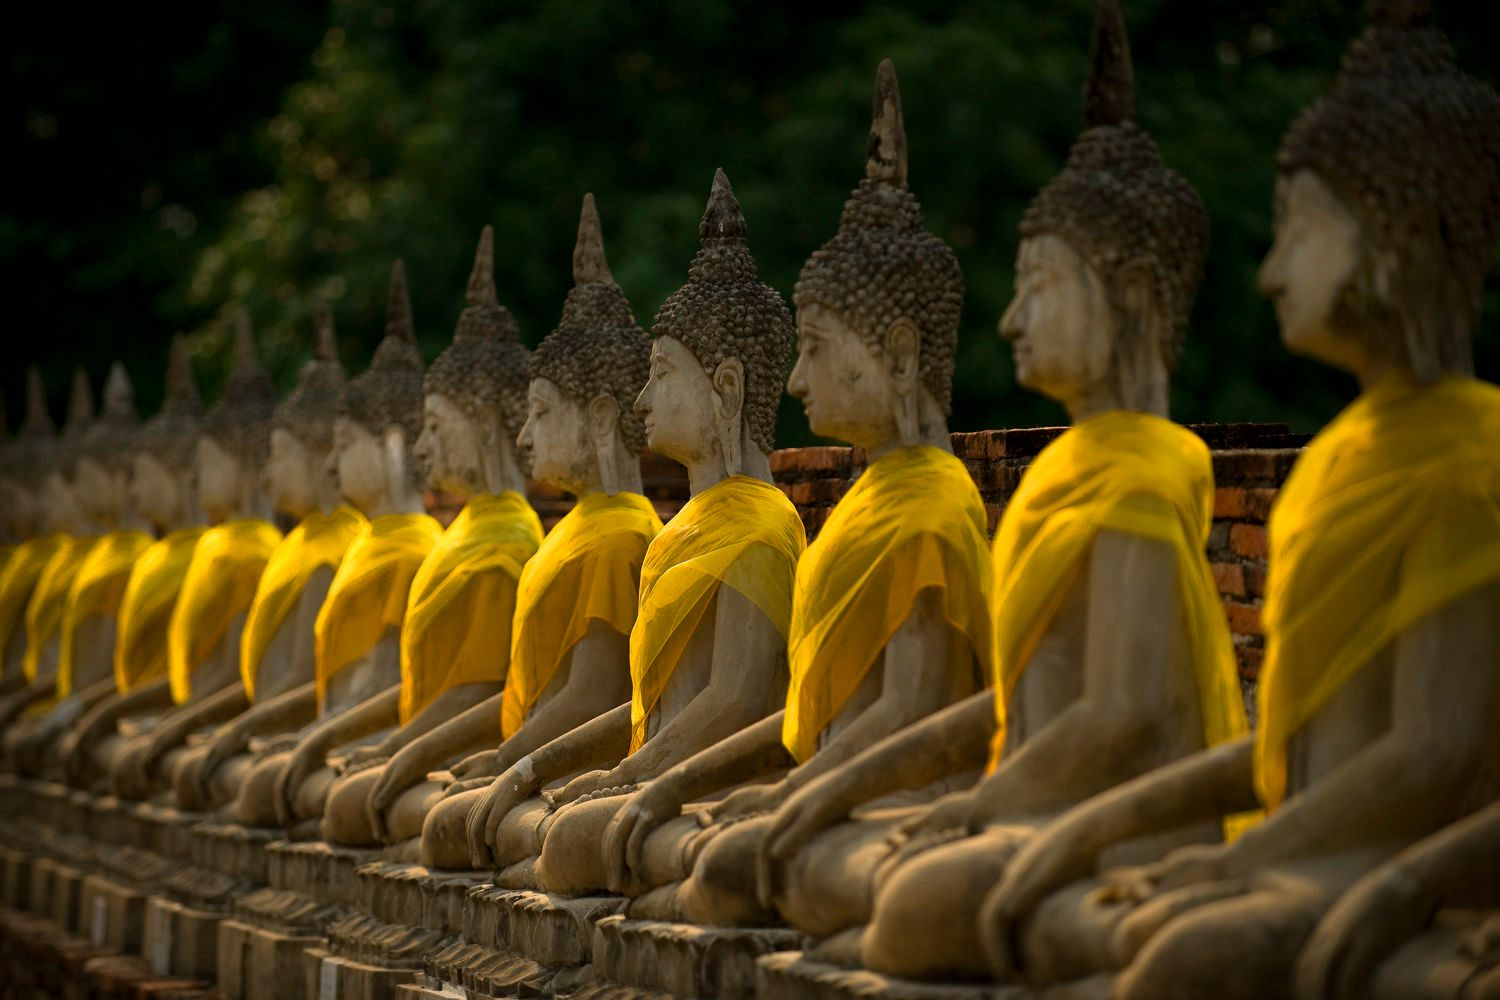 Row of Buddha Statues with Saffron Robes